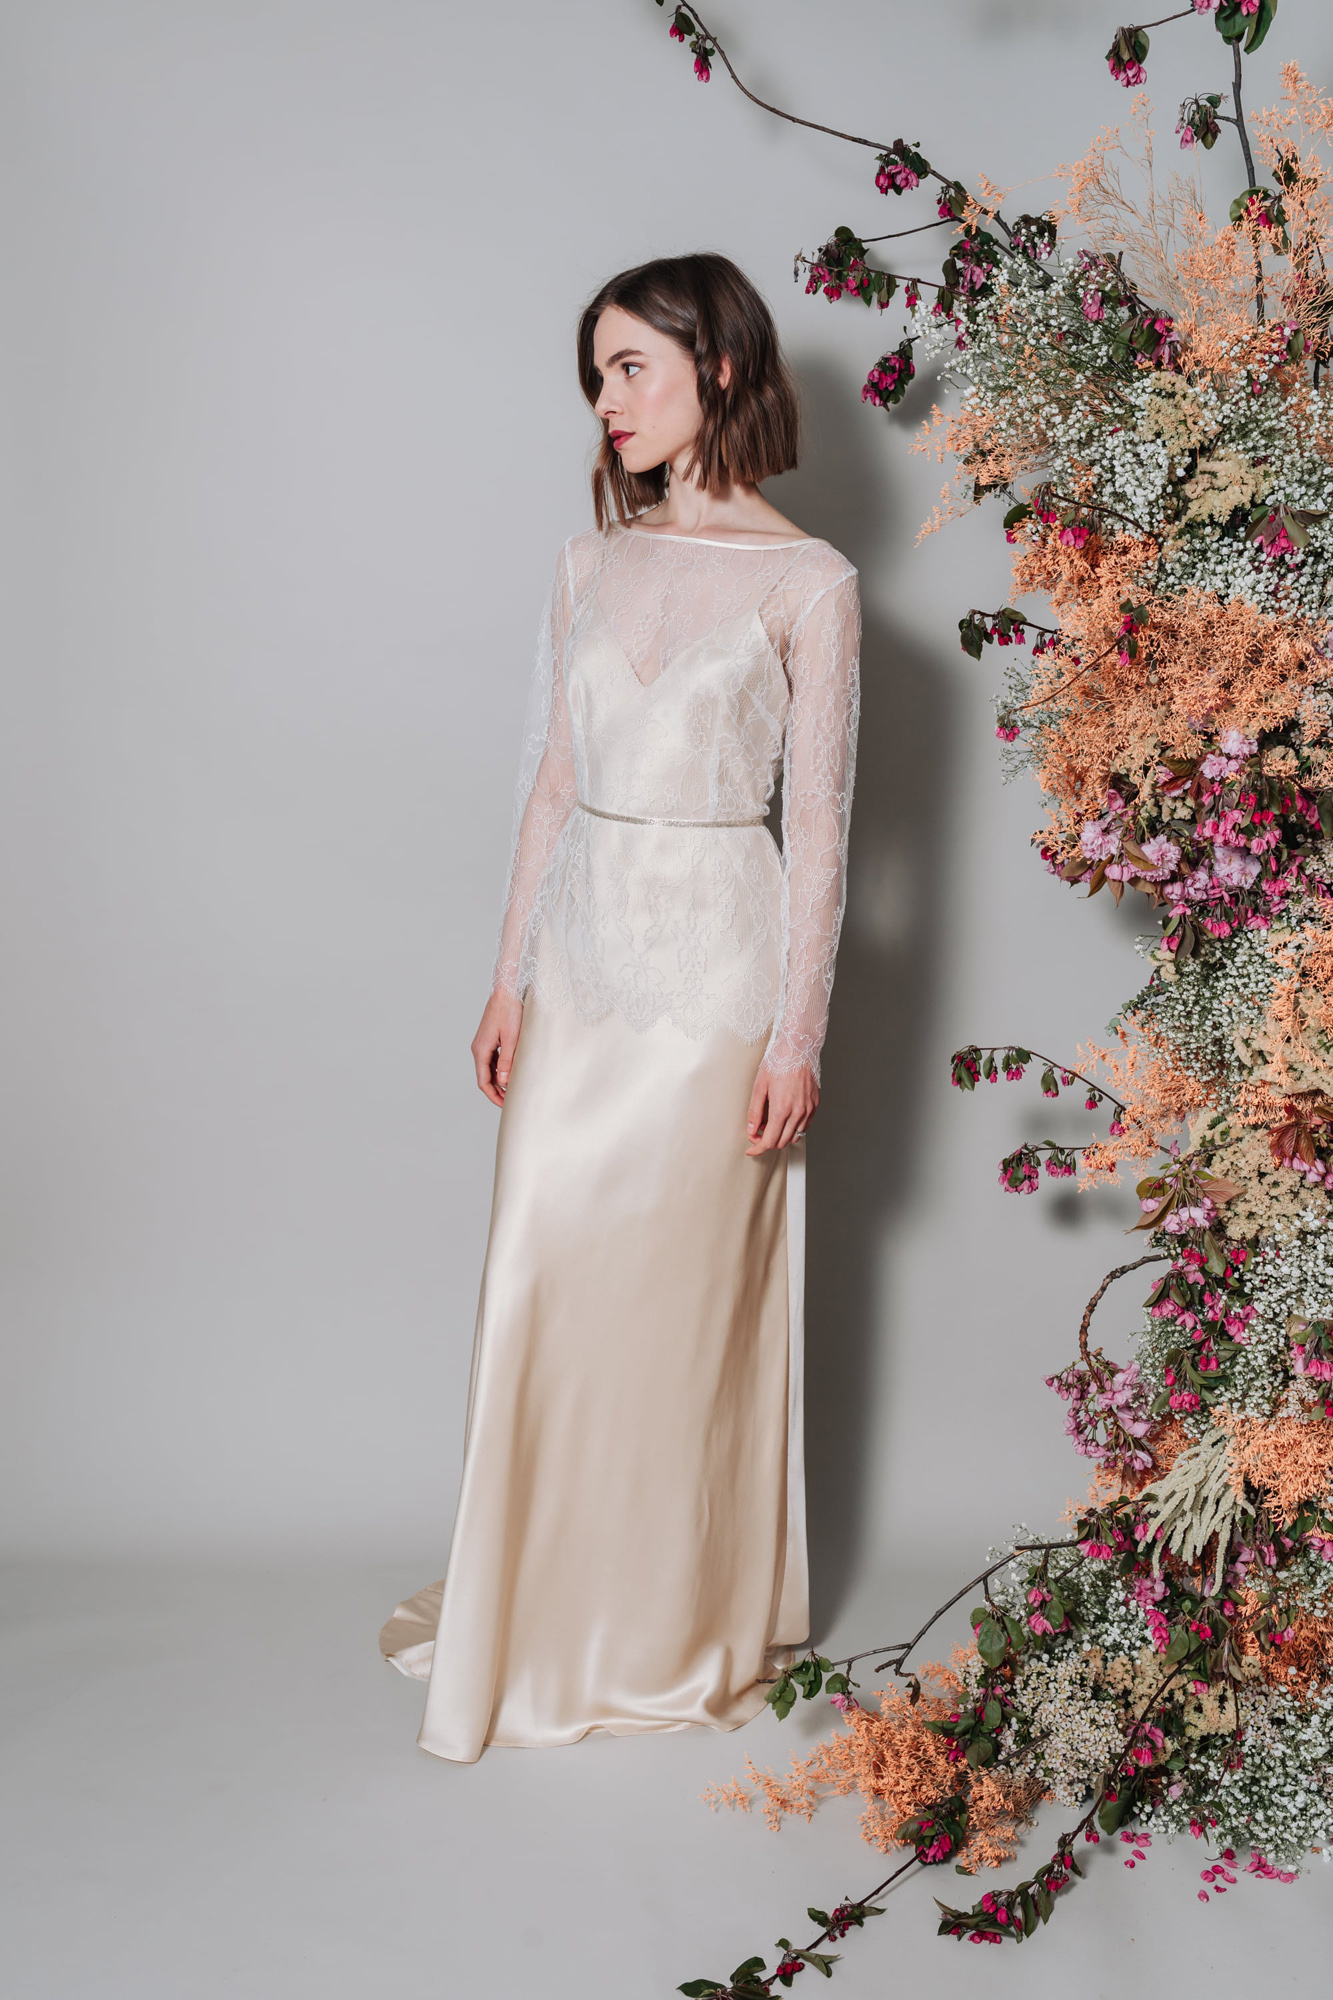 Kate-Beaumont-Sheffield-Thistle-Bridal-Separates-Two-Piece-Lace-Silk-Wedding-Gown-2.jpg